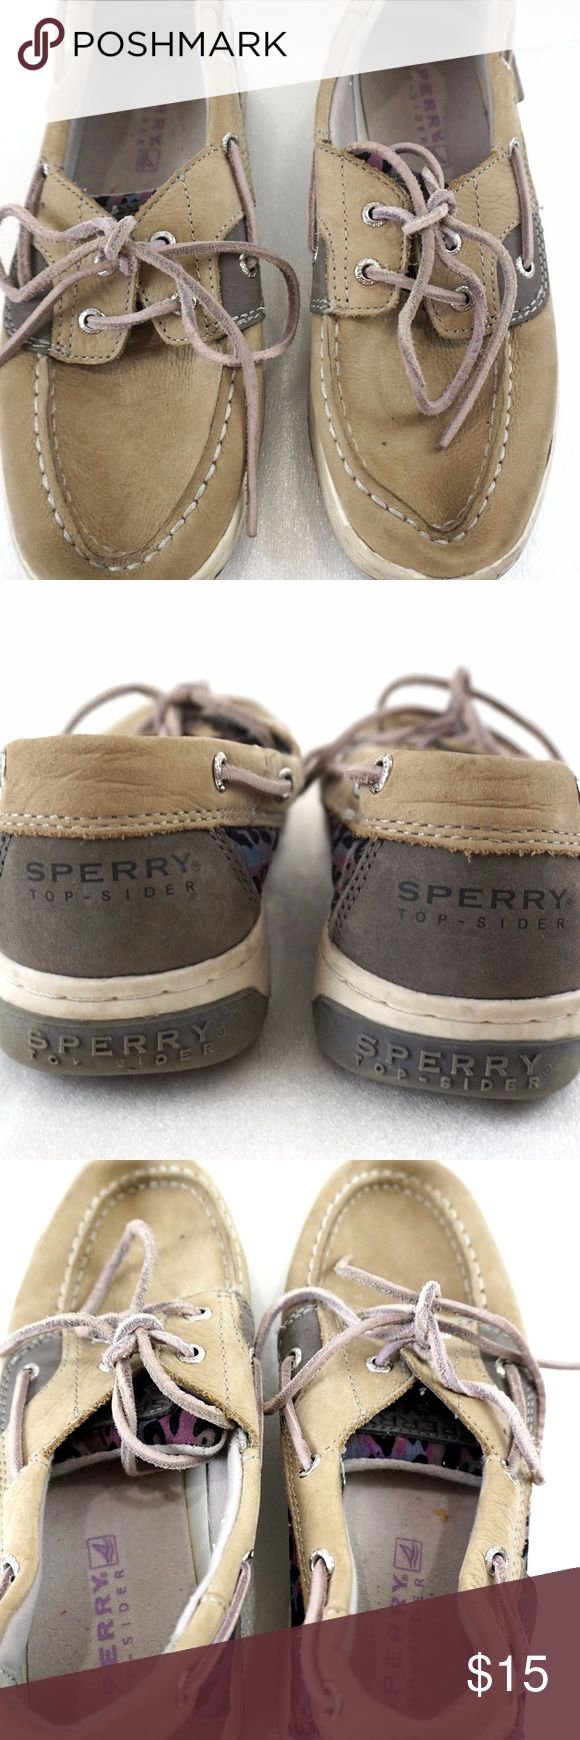 """Sperry Topsider Bluefish Womens 4M Boat Shoes Sperry Topsider boat shoes for sale. These are, """"Bluefish"""".  Size: 4M Length: 9.5"""" from heel to front of toe Width: 3.25"""" at widest part of sole  I'll ship within 24 hours  Thank you Sperry Shoes Flats & Loafers"""